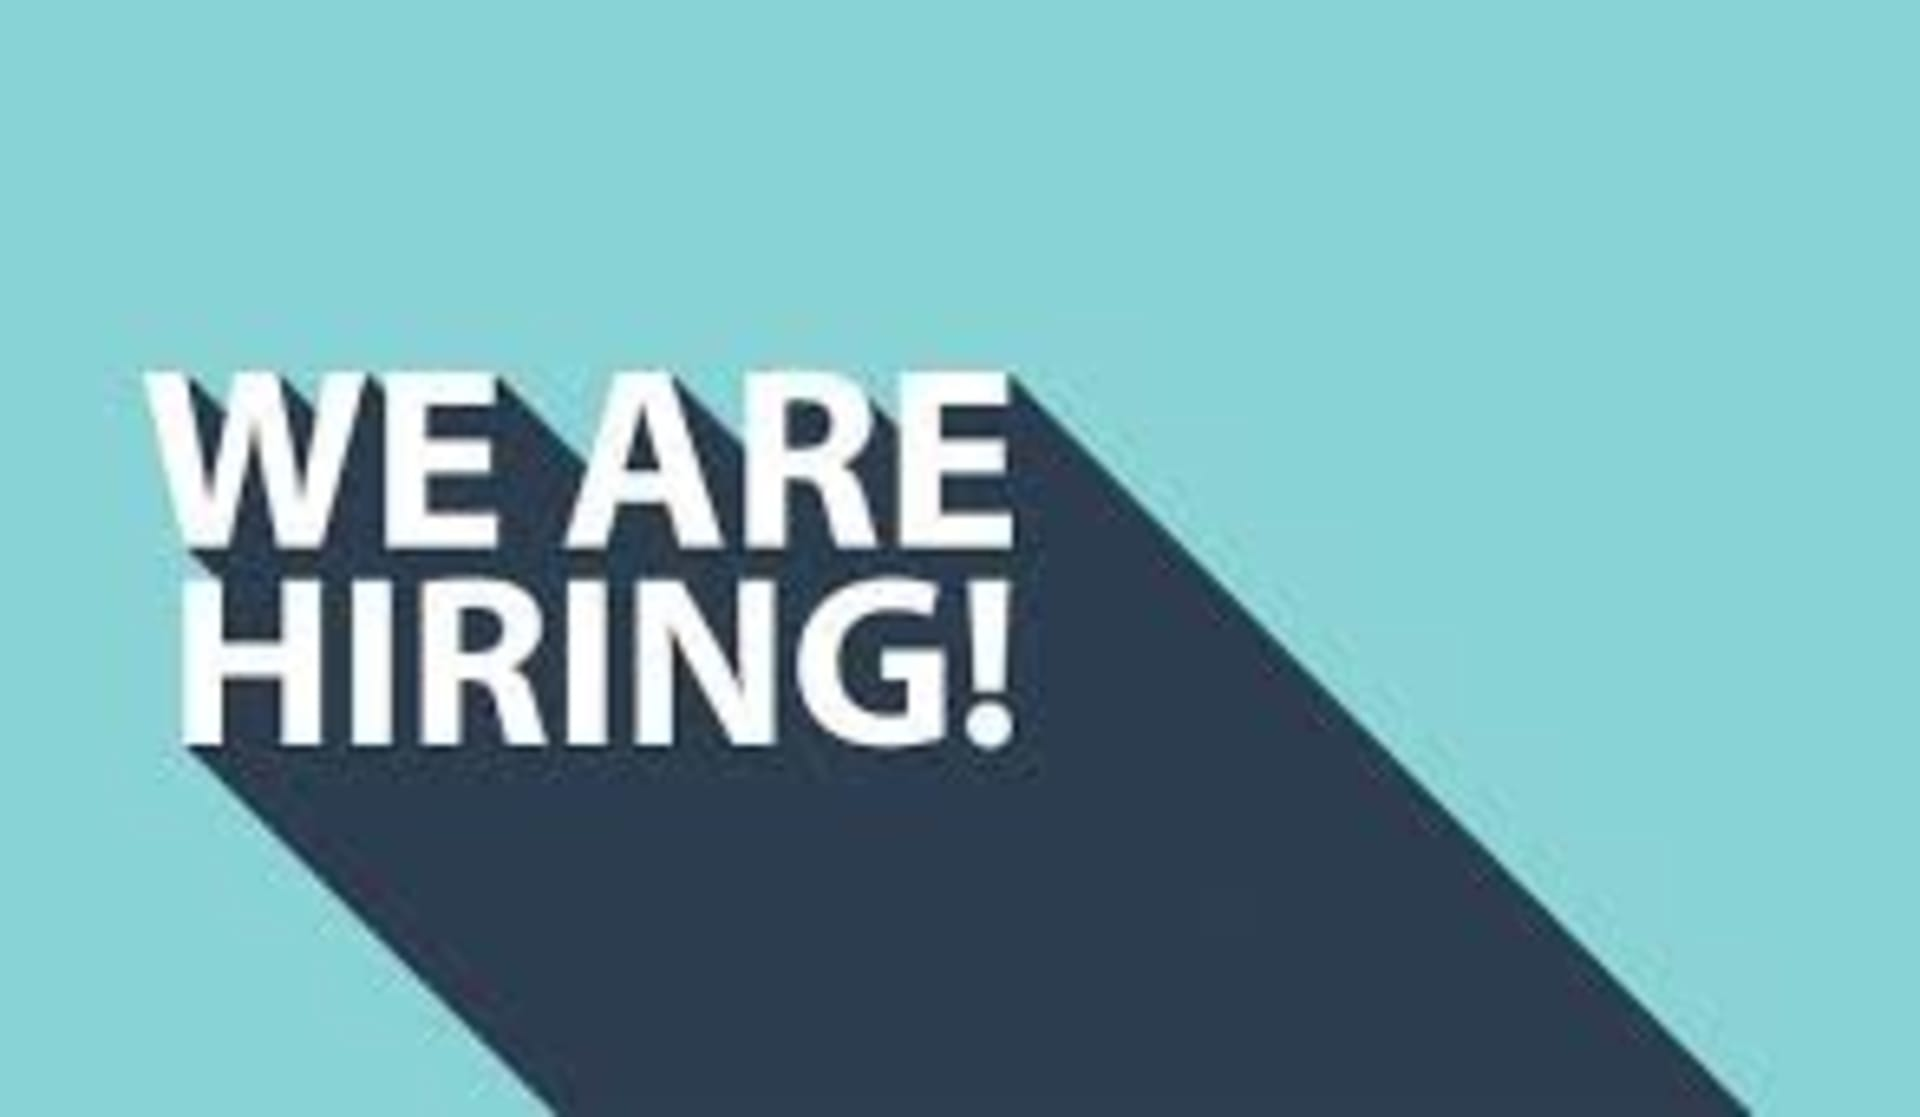 Looking for year round servers and busers Submit your application online or give us a call! barker@thebarker.com or 781-545-6533